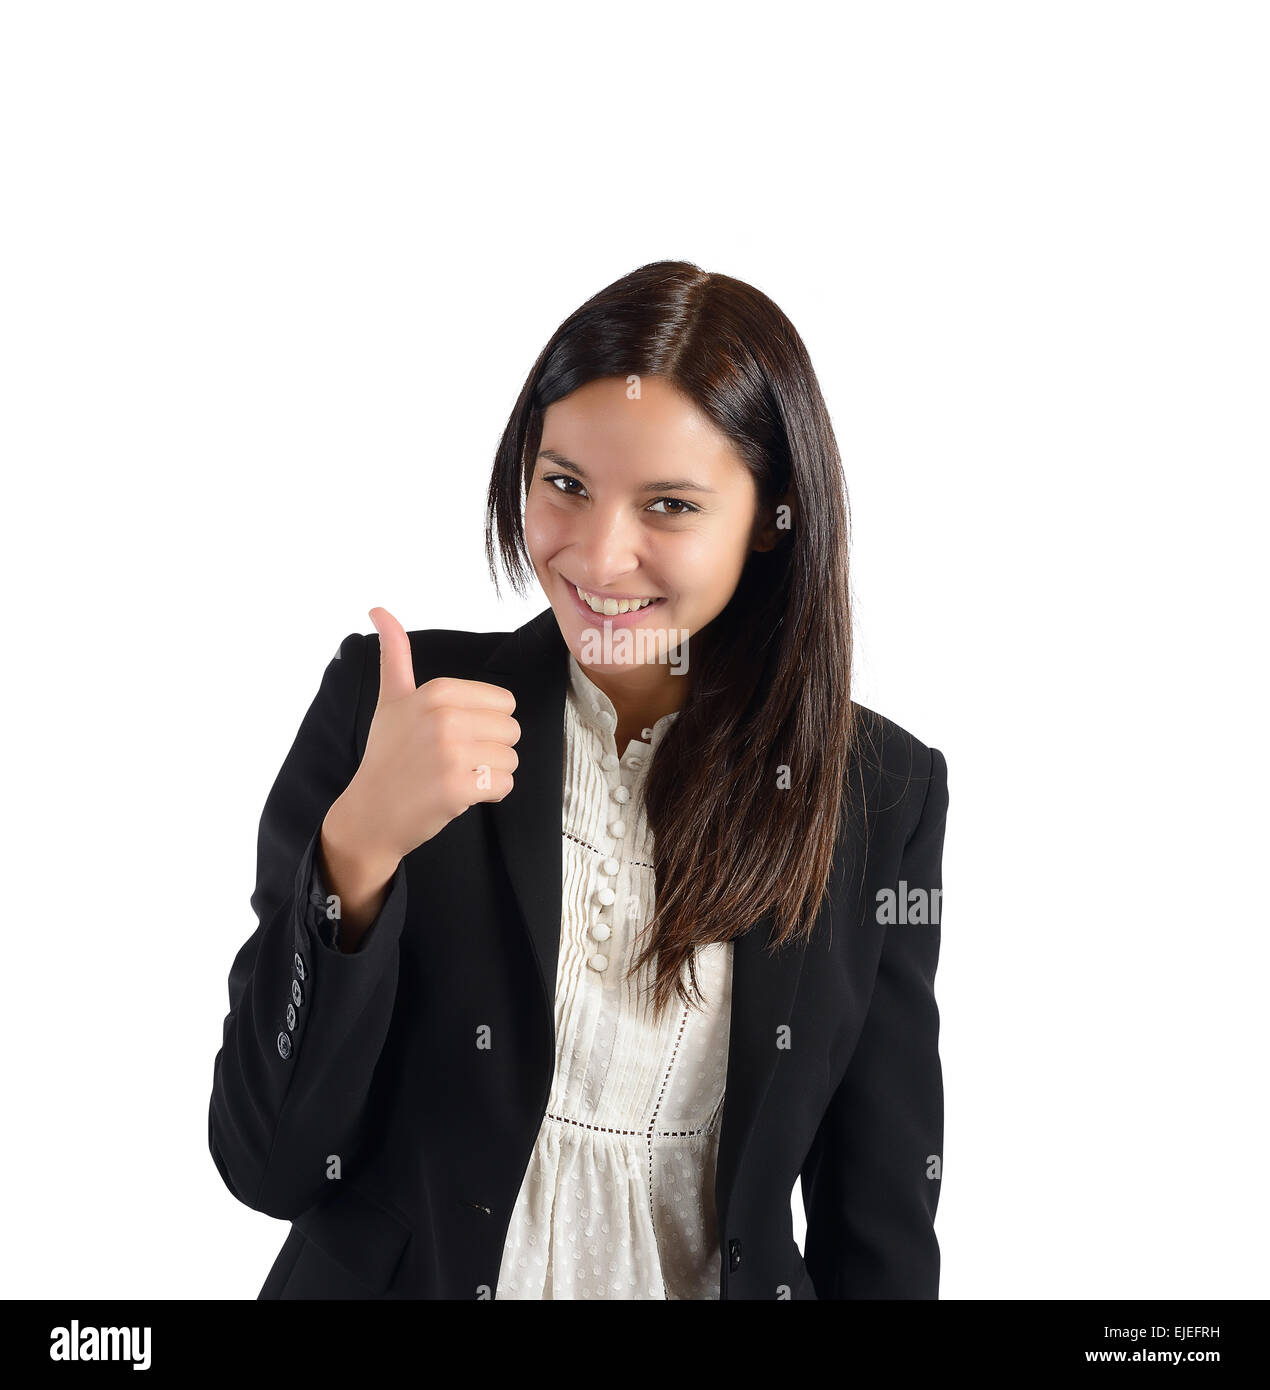 Positive and smiling businesswoman - Stock Image